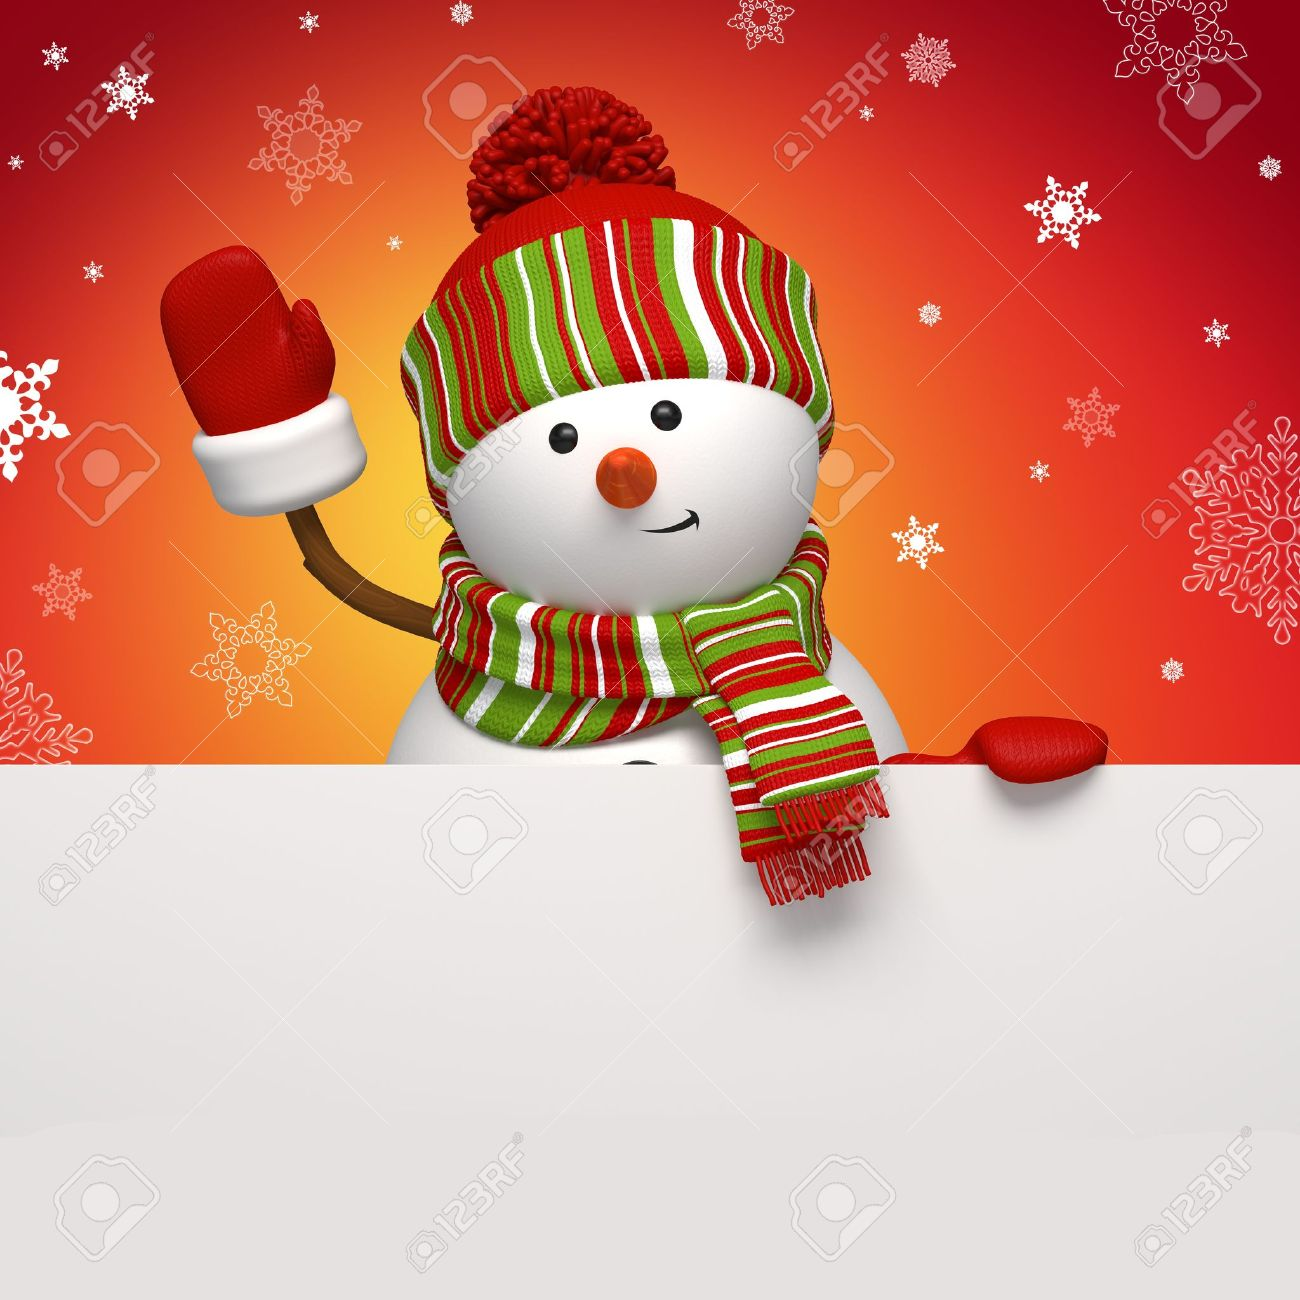 Clip Art Snowman Stock Photos & Pictures. Royalty Free Clip Art ...